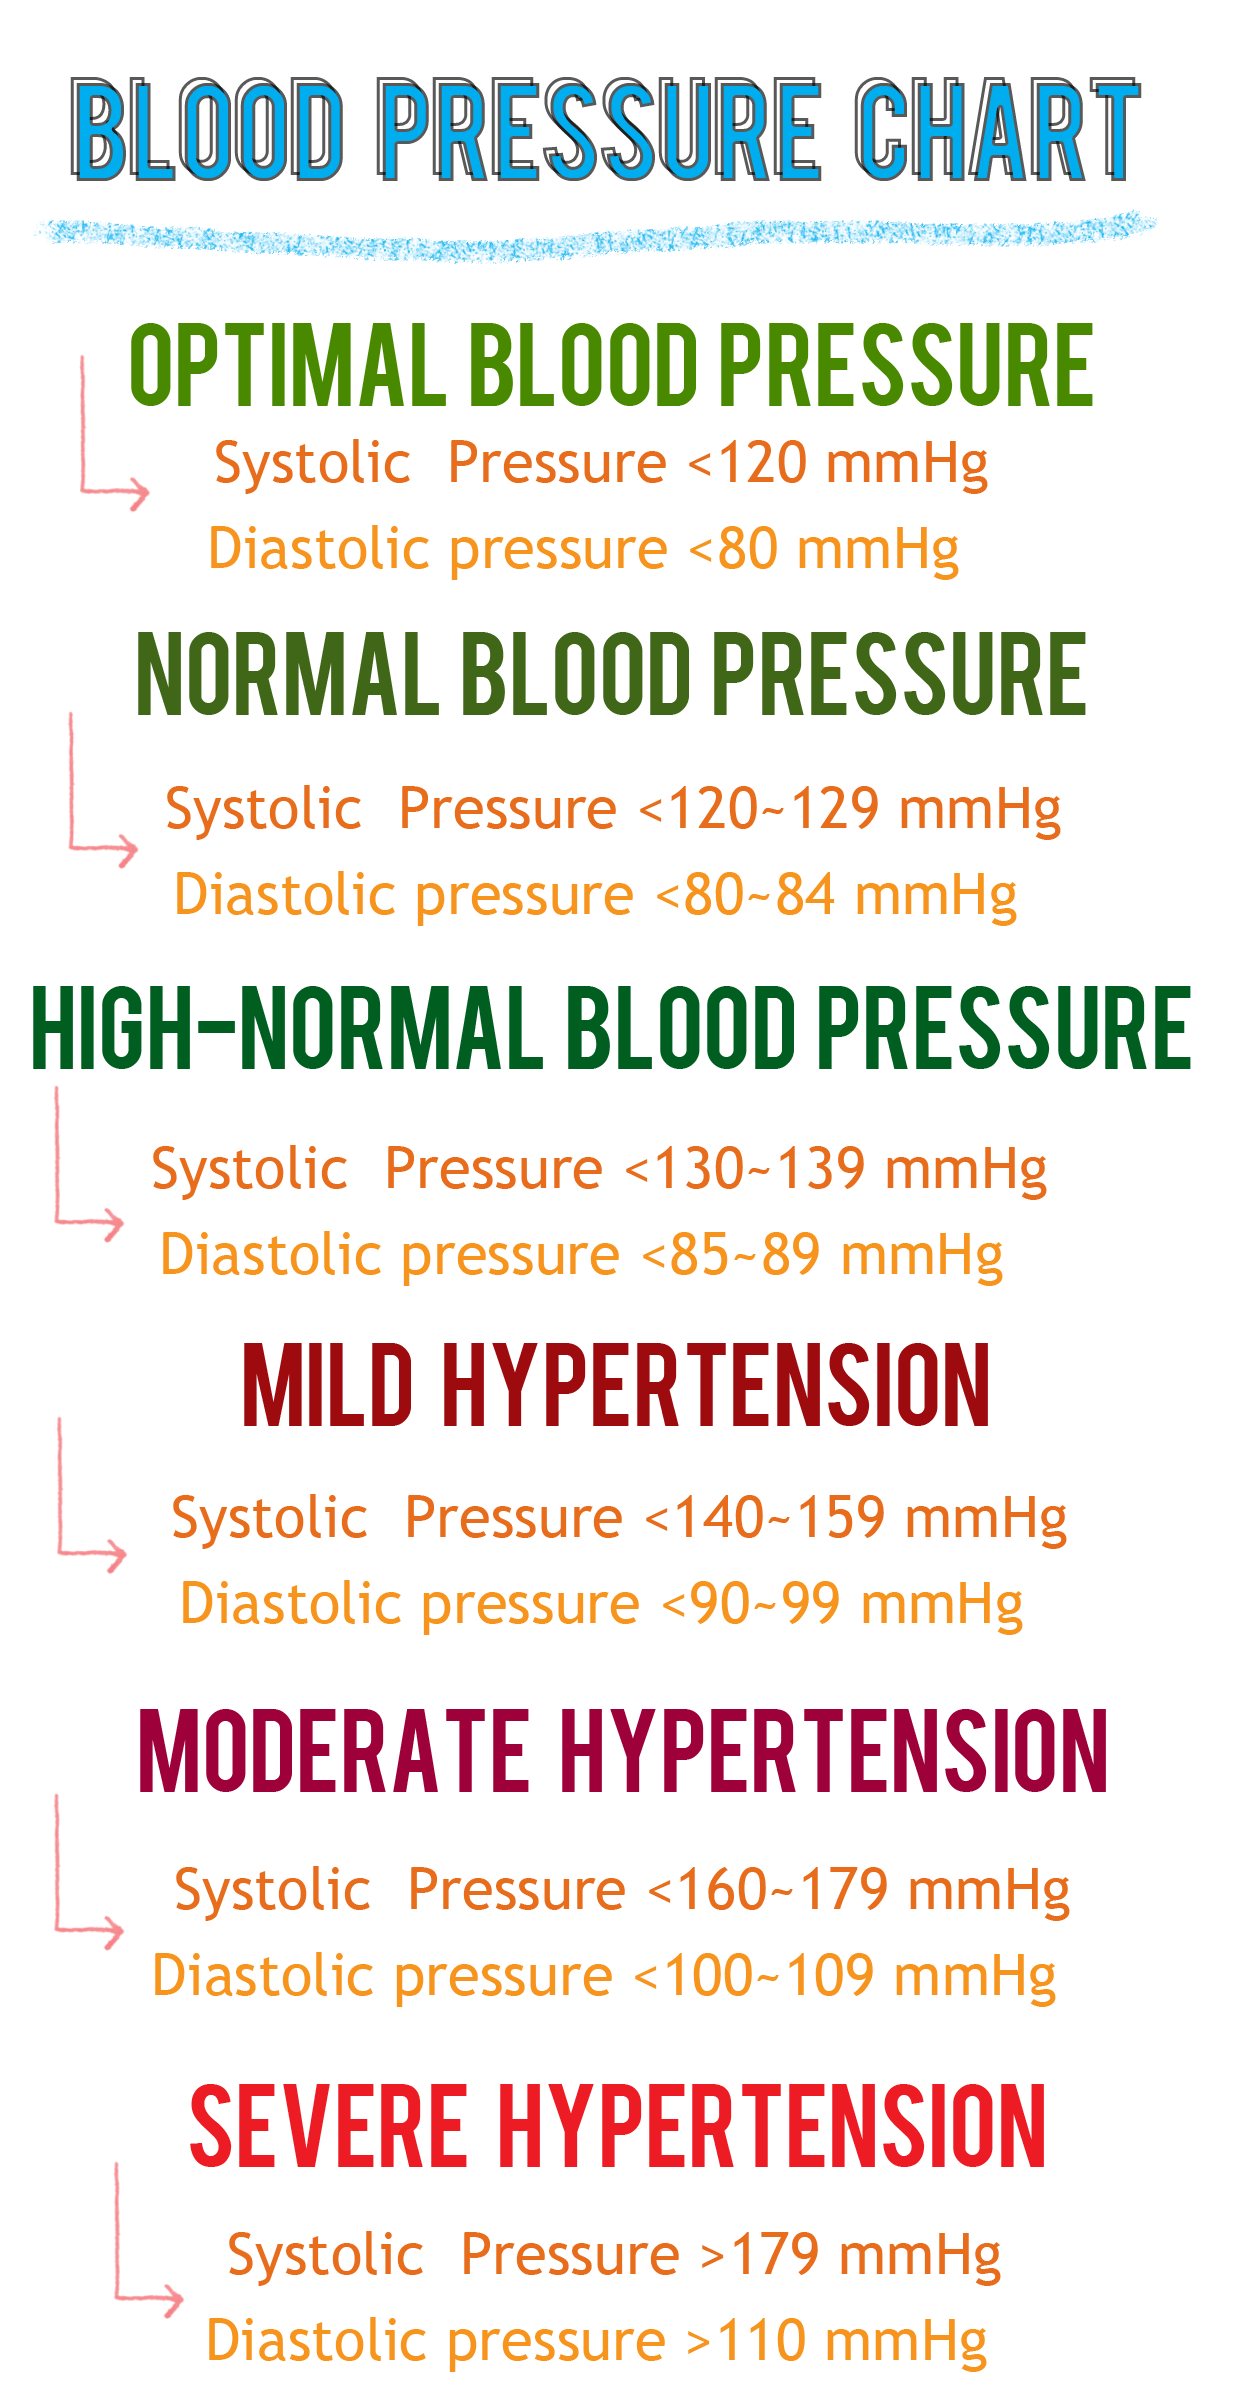 blood pressure chart by age and gender pdf